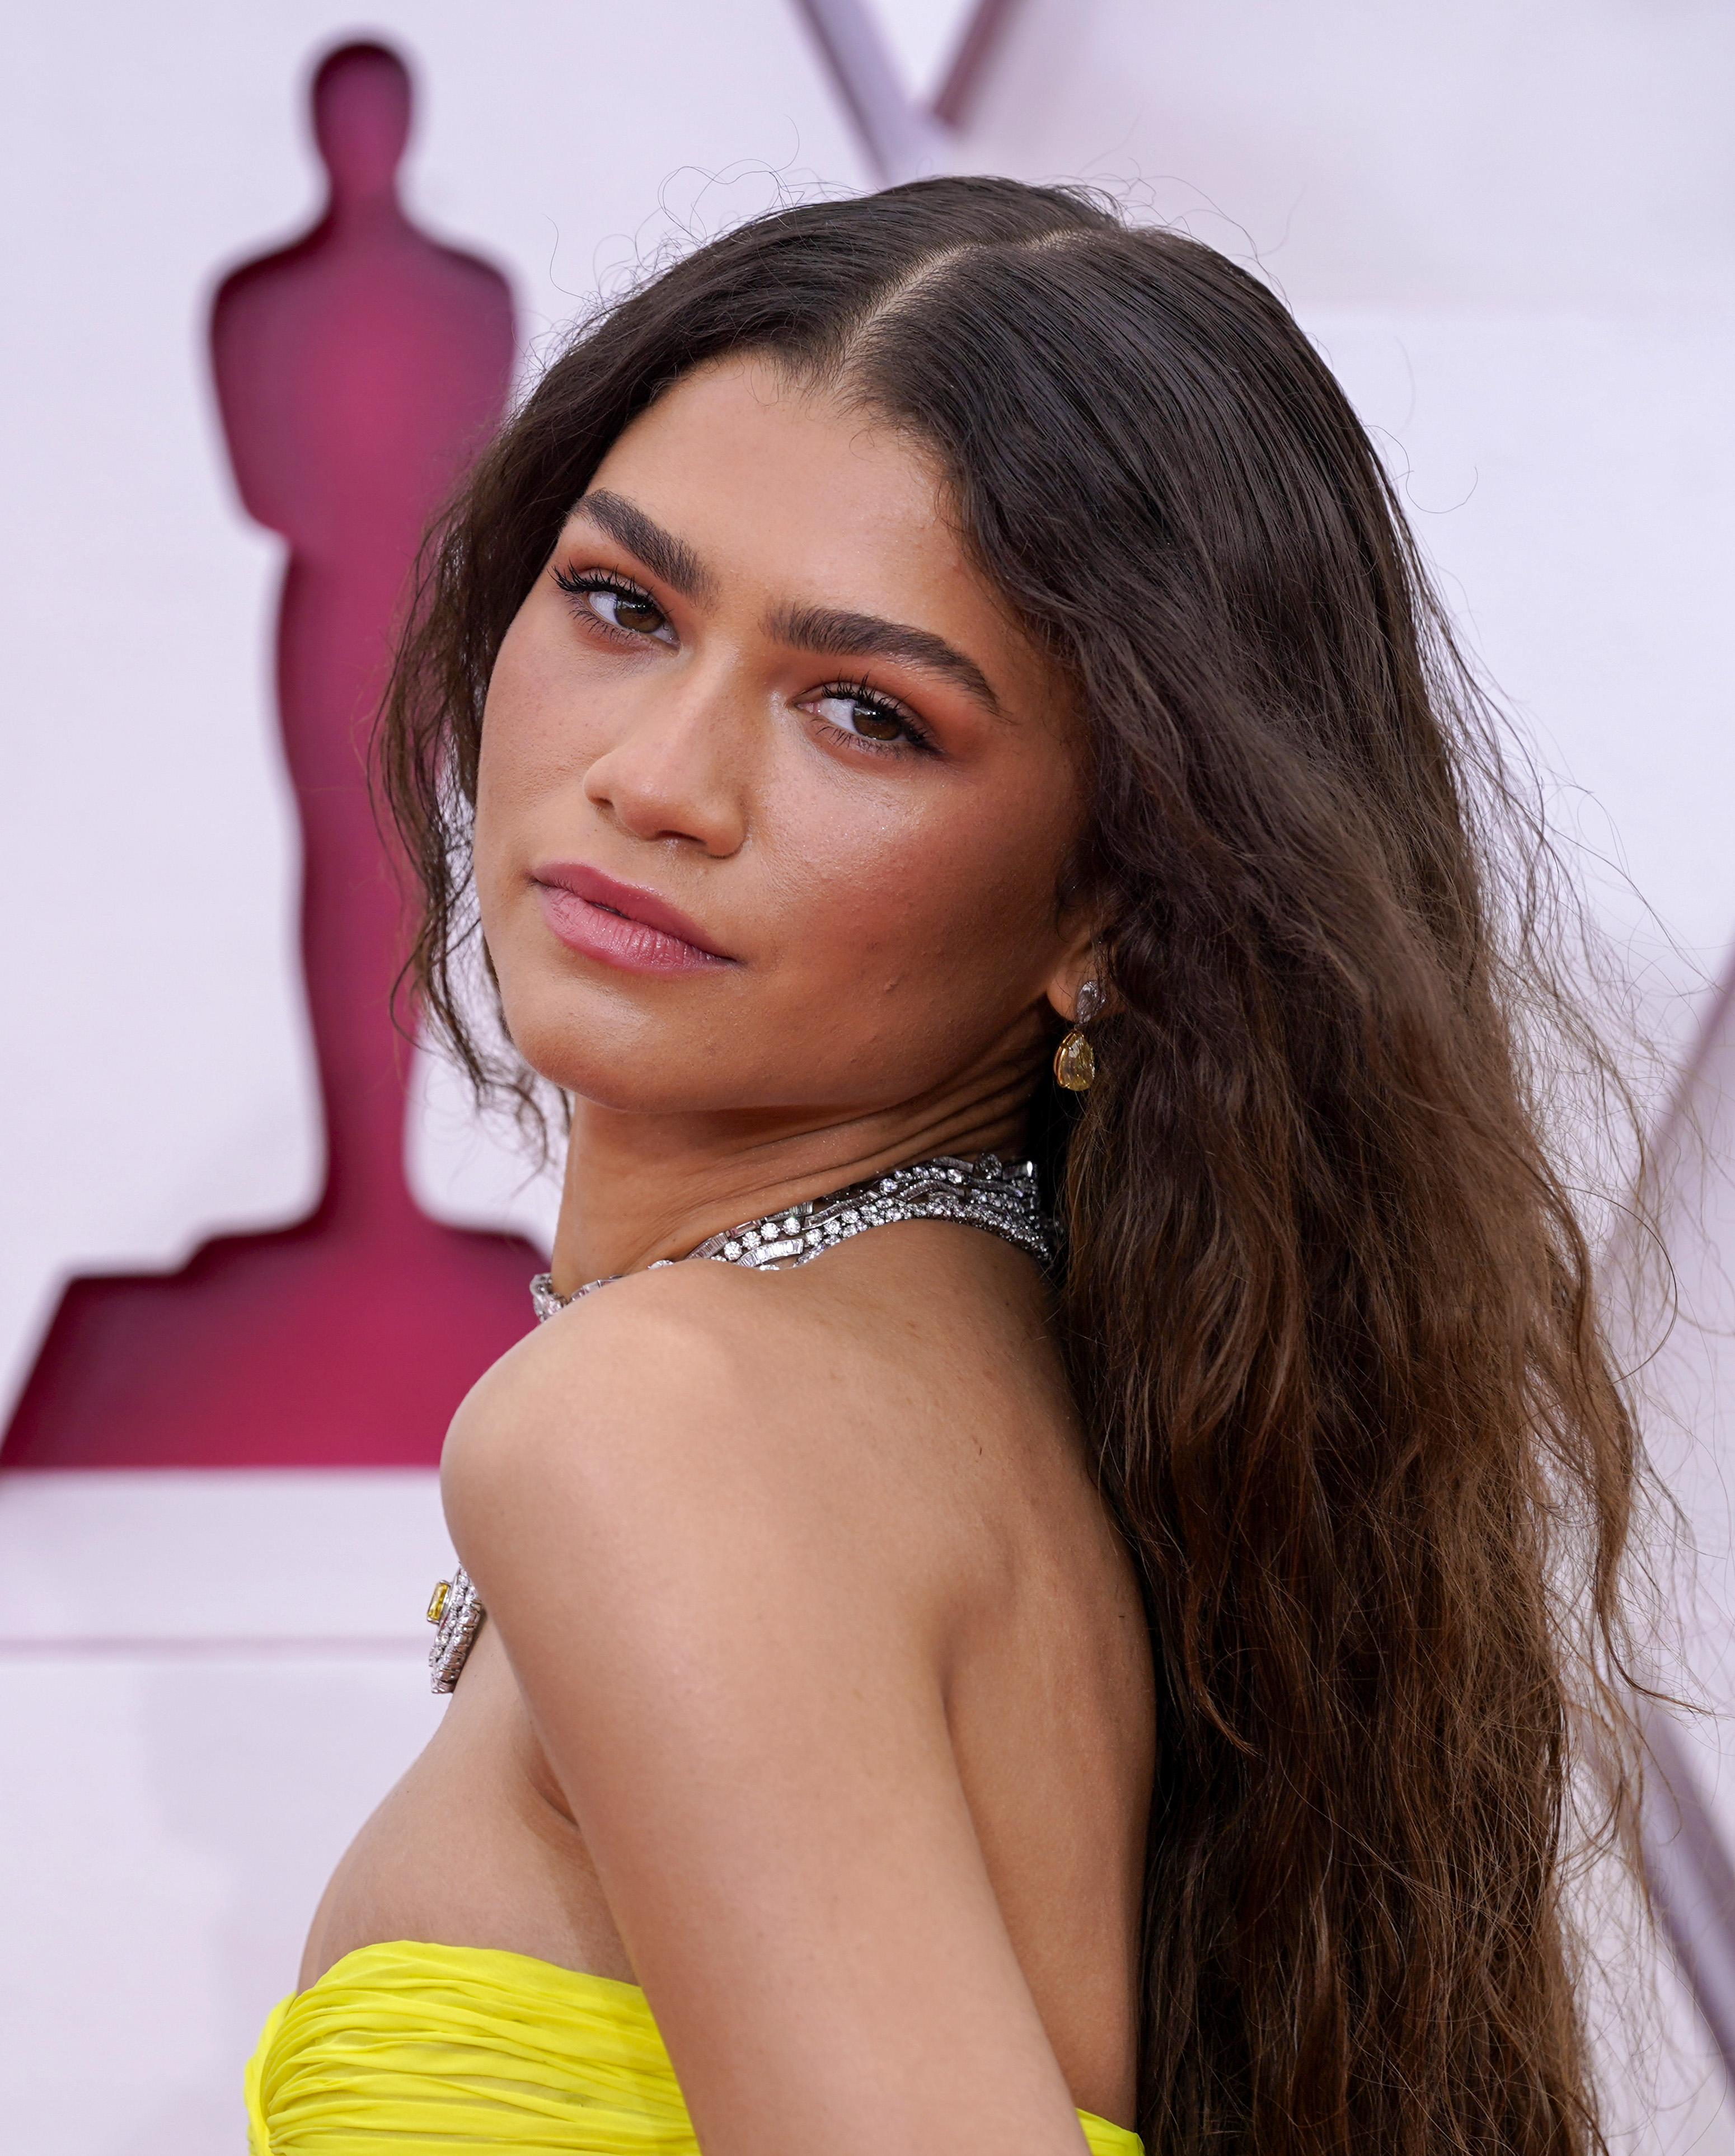 Zendaya at an event for The 93rd Oscars (2021)